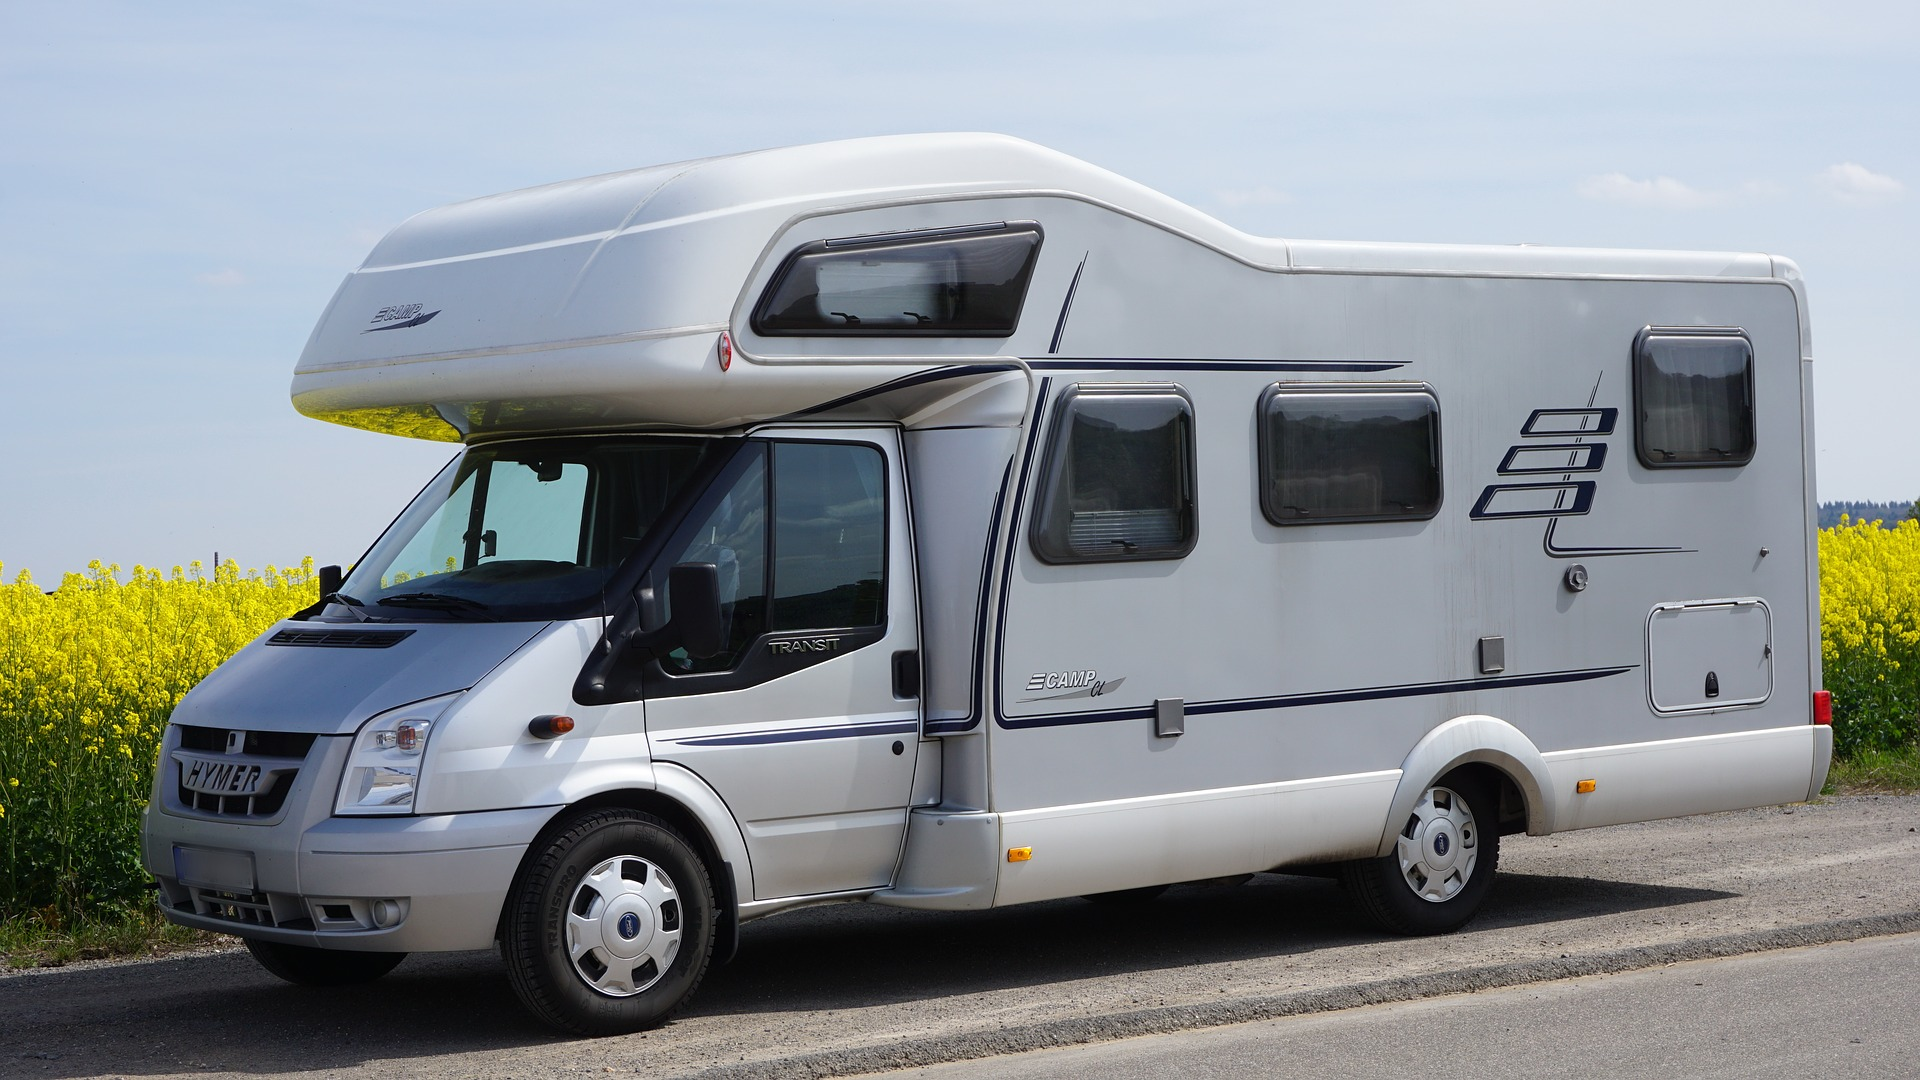 Achat camping car occasion nantes